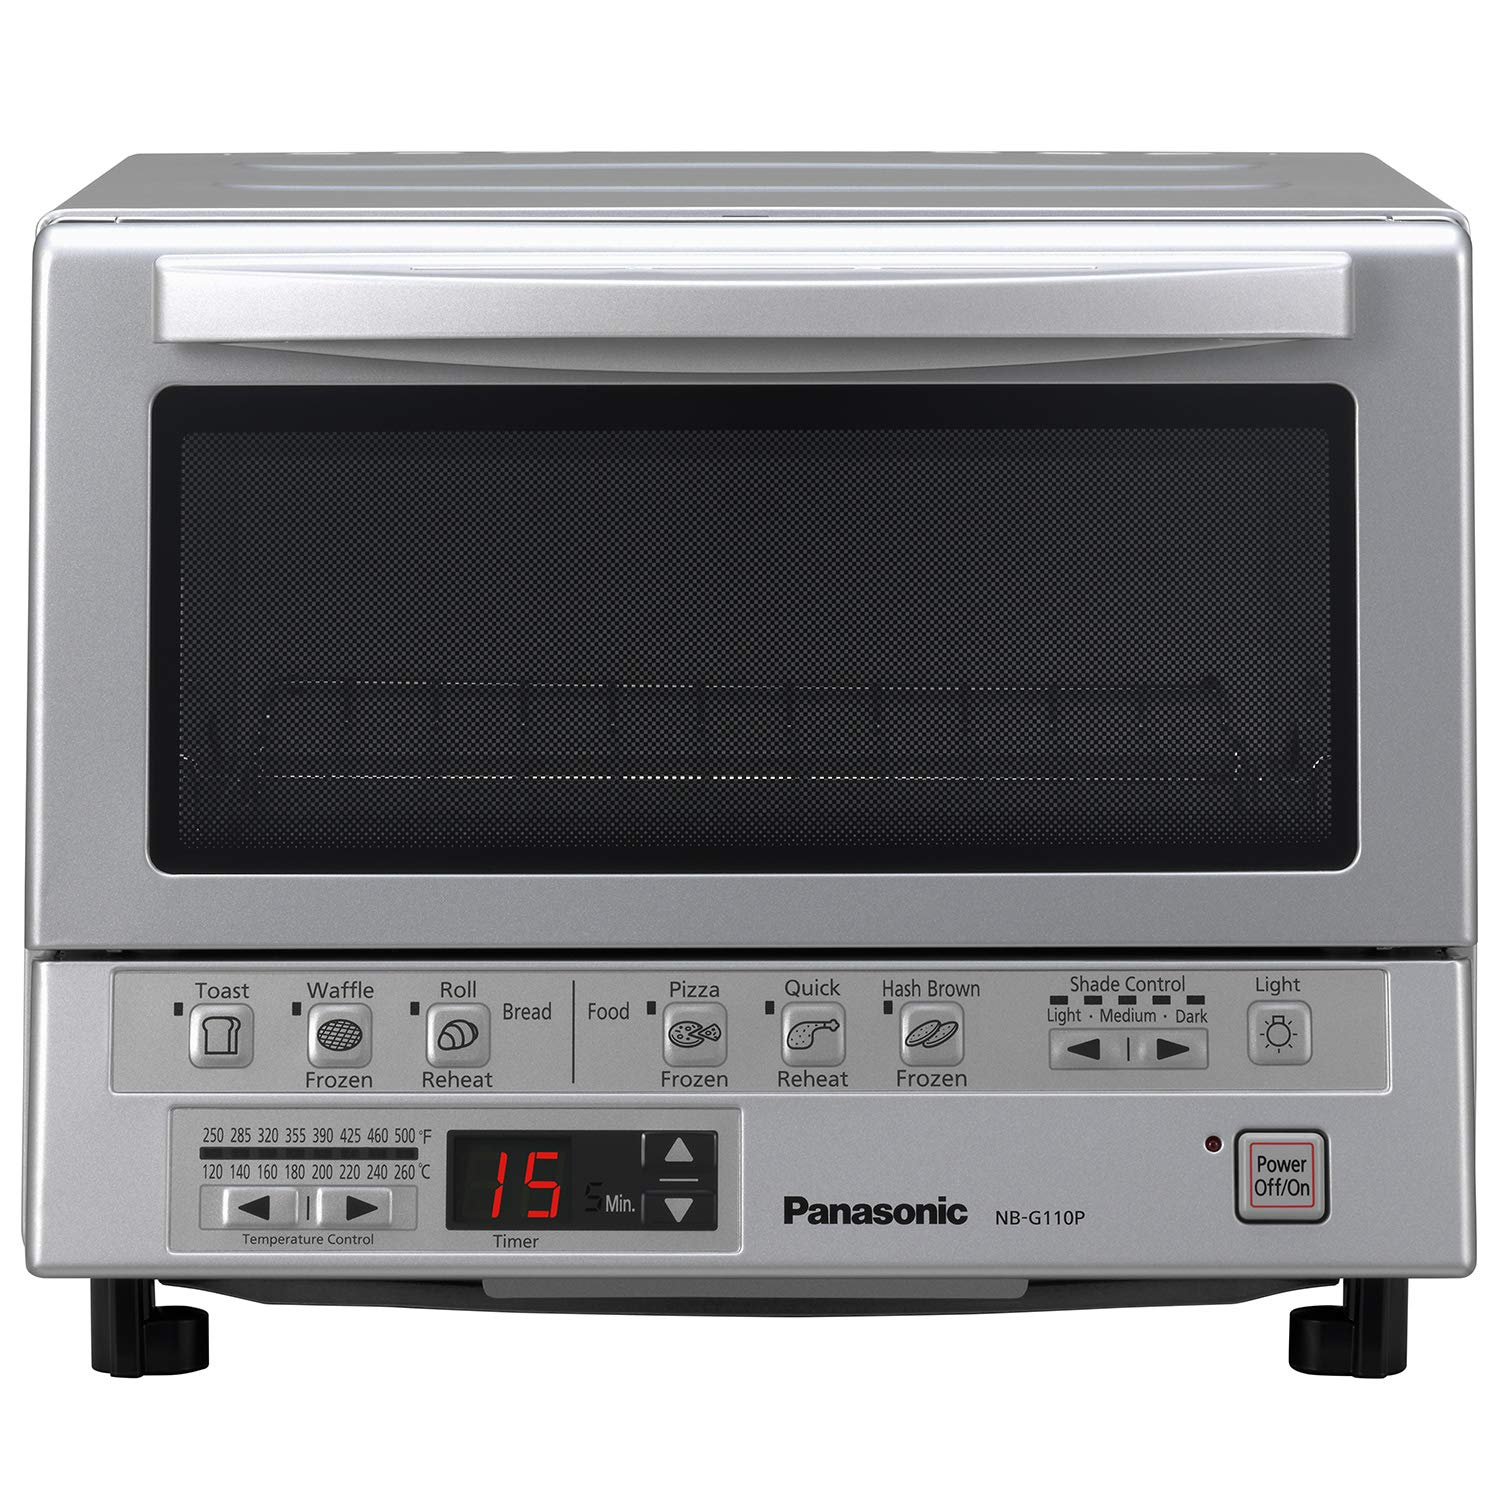 Panasonic FlashXpress Compact Toaster Oven